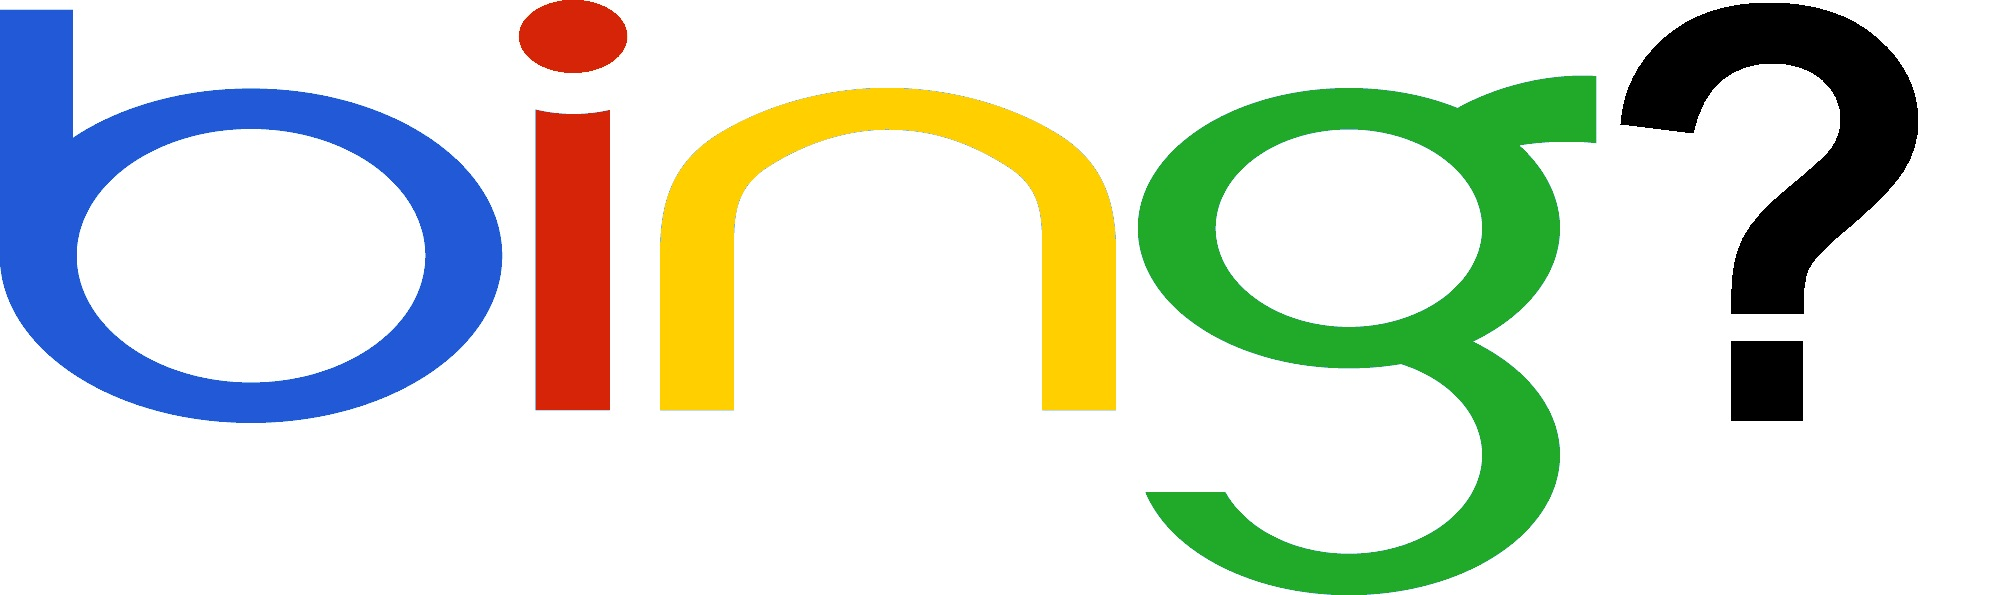 Bing - Microsoft S Bing Service Has Historically Burdened The Company As The Less Popular Choice With Consumers Forcing Redmond To Rethink Its Strategy Search